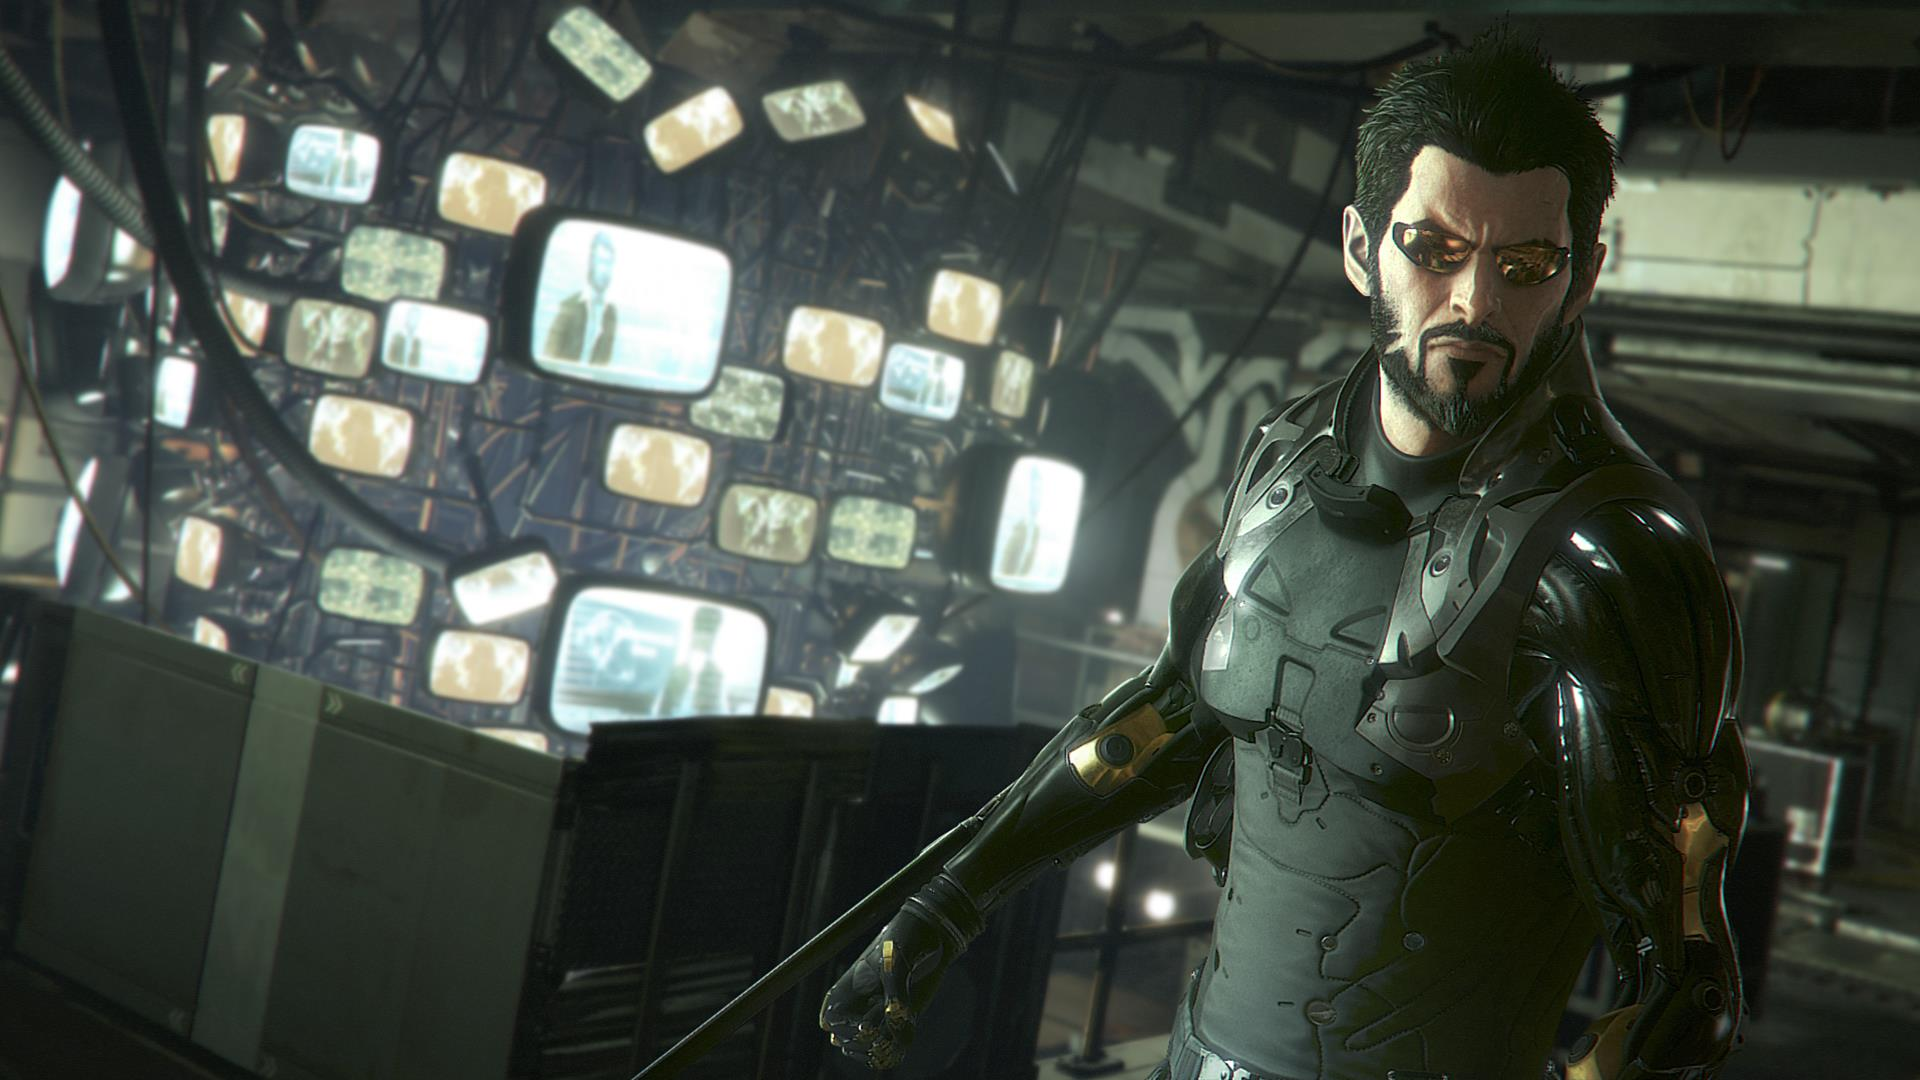 Deus Ex and The Avengers developer to focus more on online games going forward